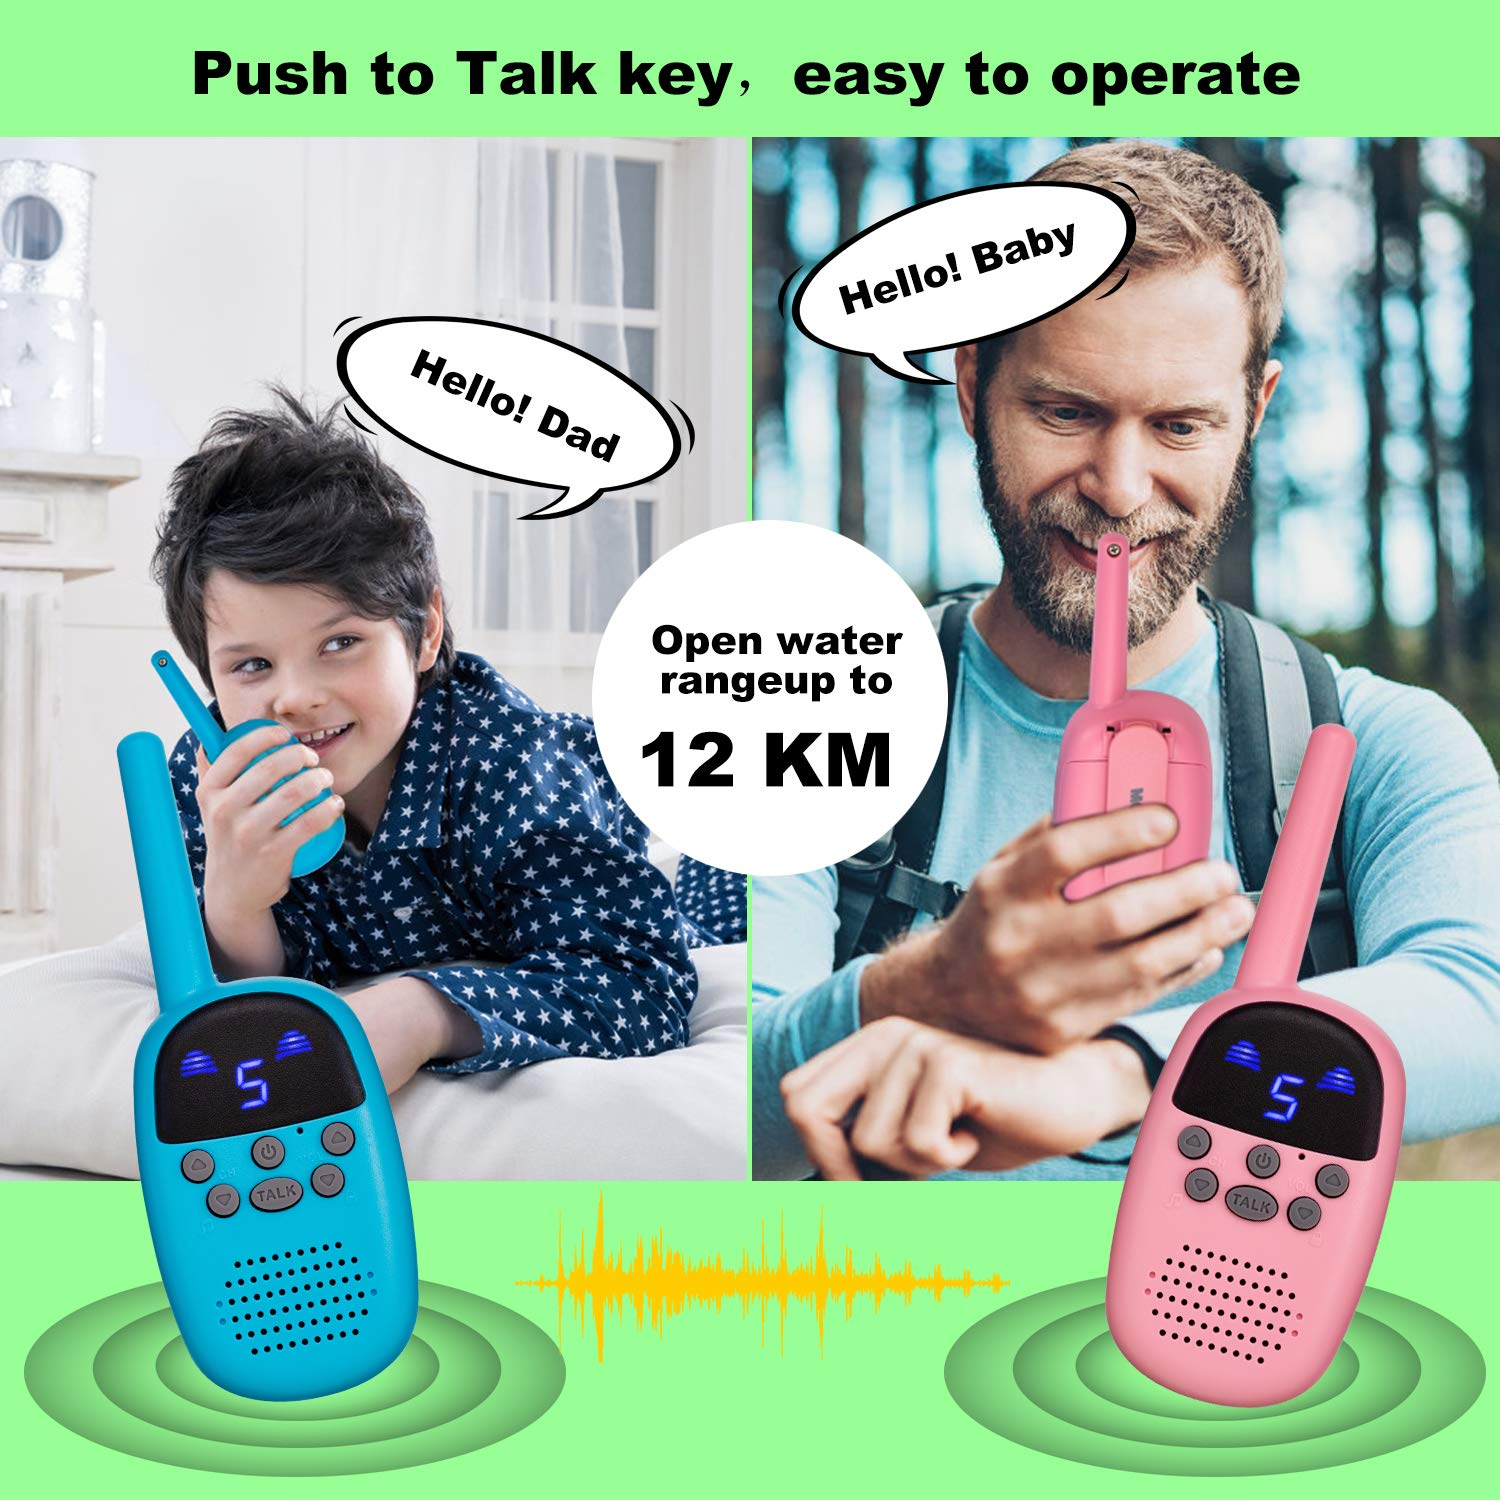 omzer Toy Walkie Talkies for Kids with 9 Channels FRS/GMRS Handheld Interphone Long Range for Adventures, Camping, Hiking, Great Creative Gifts for 4-7 Years Old Girls Boys(Pink/Blue, 1 Pair) by omzer (Image #5)